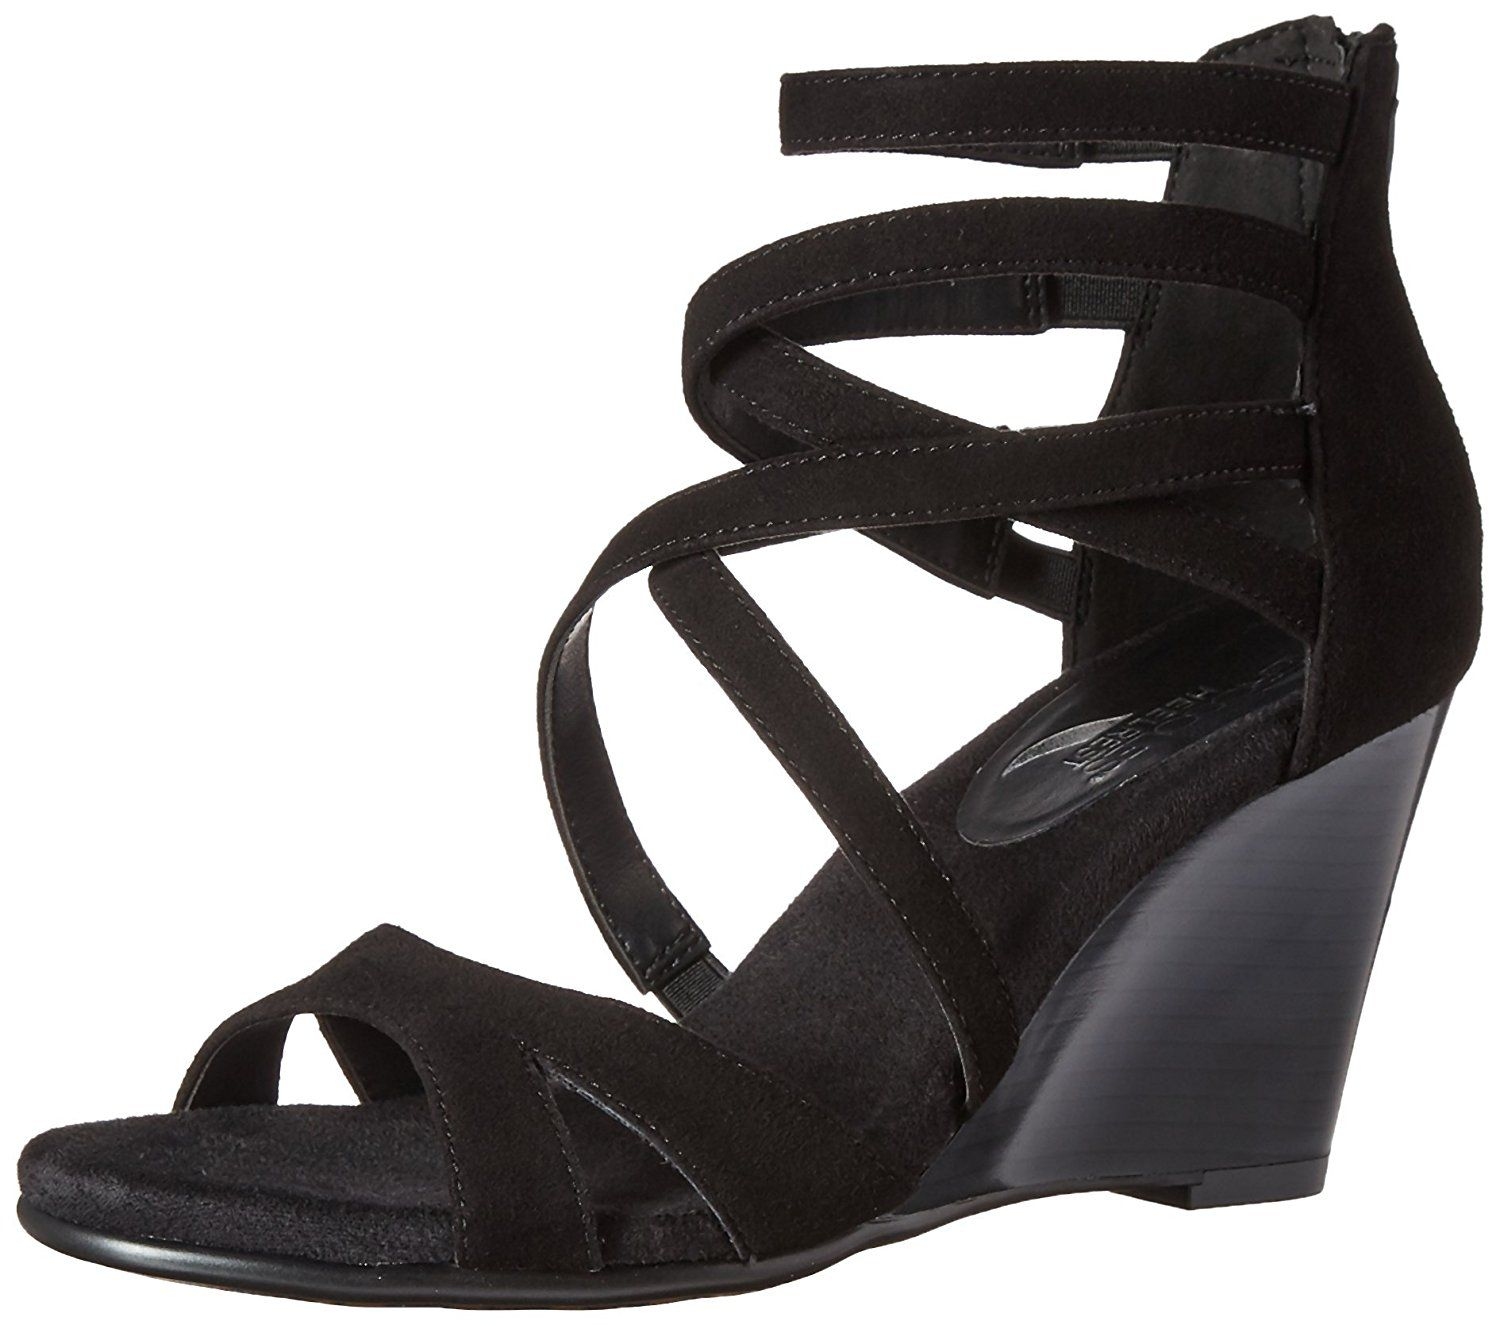 Womens sandals wedges - Aerosoles Women S Glossary Wedge Sandal Trust Me This Is Great Click The